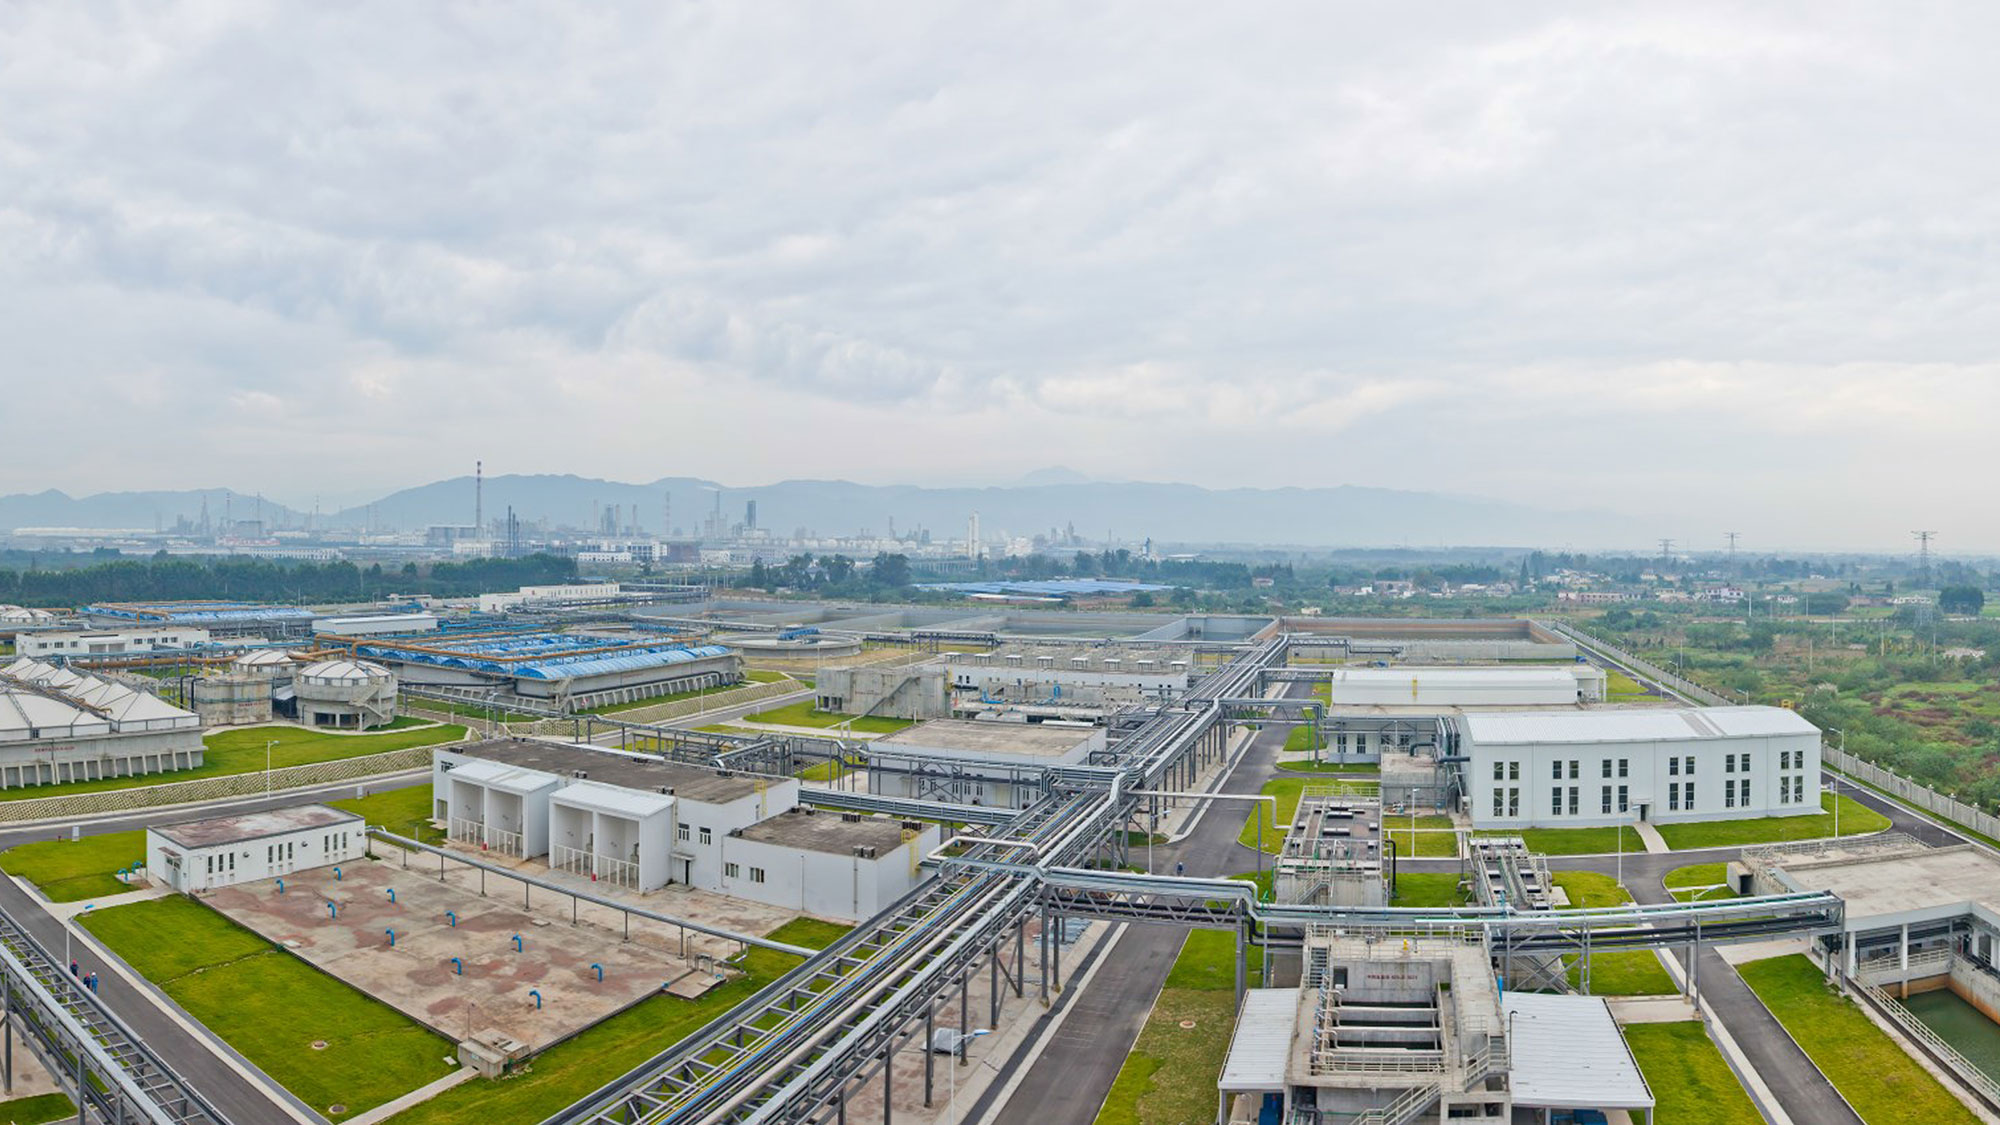 PetroChina's refinery in Chengdu: safe wastewater treatment and